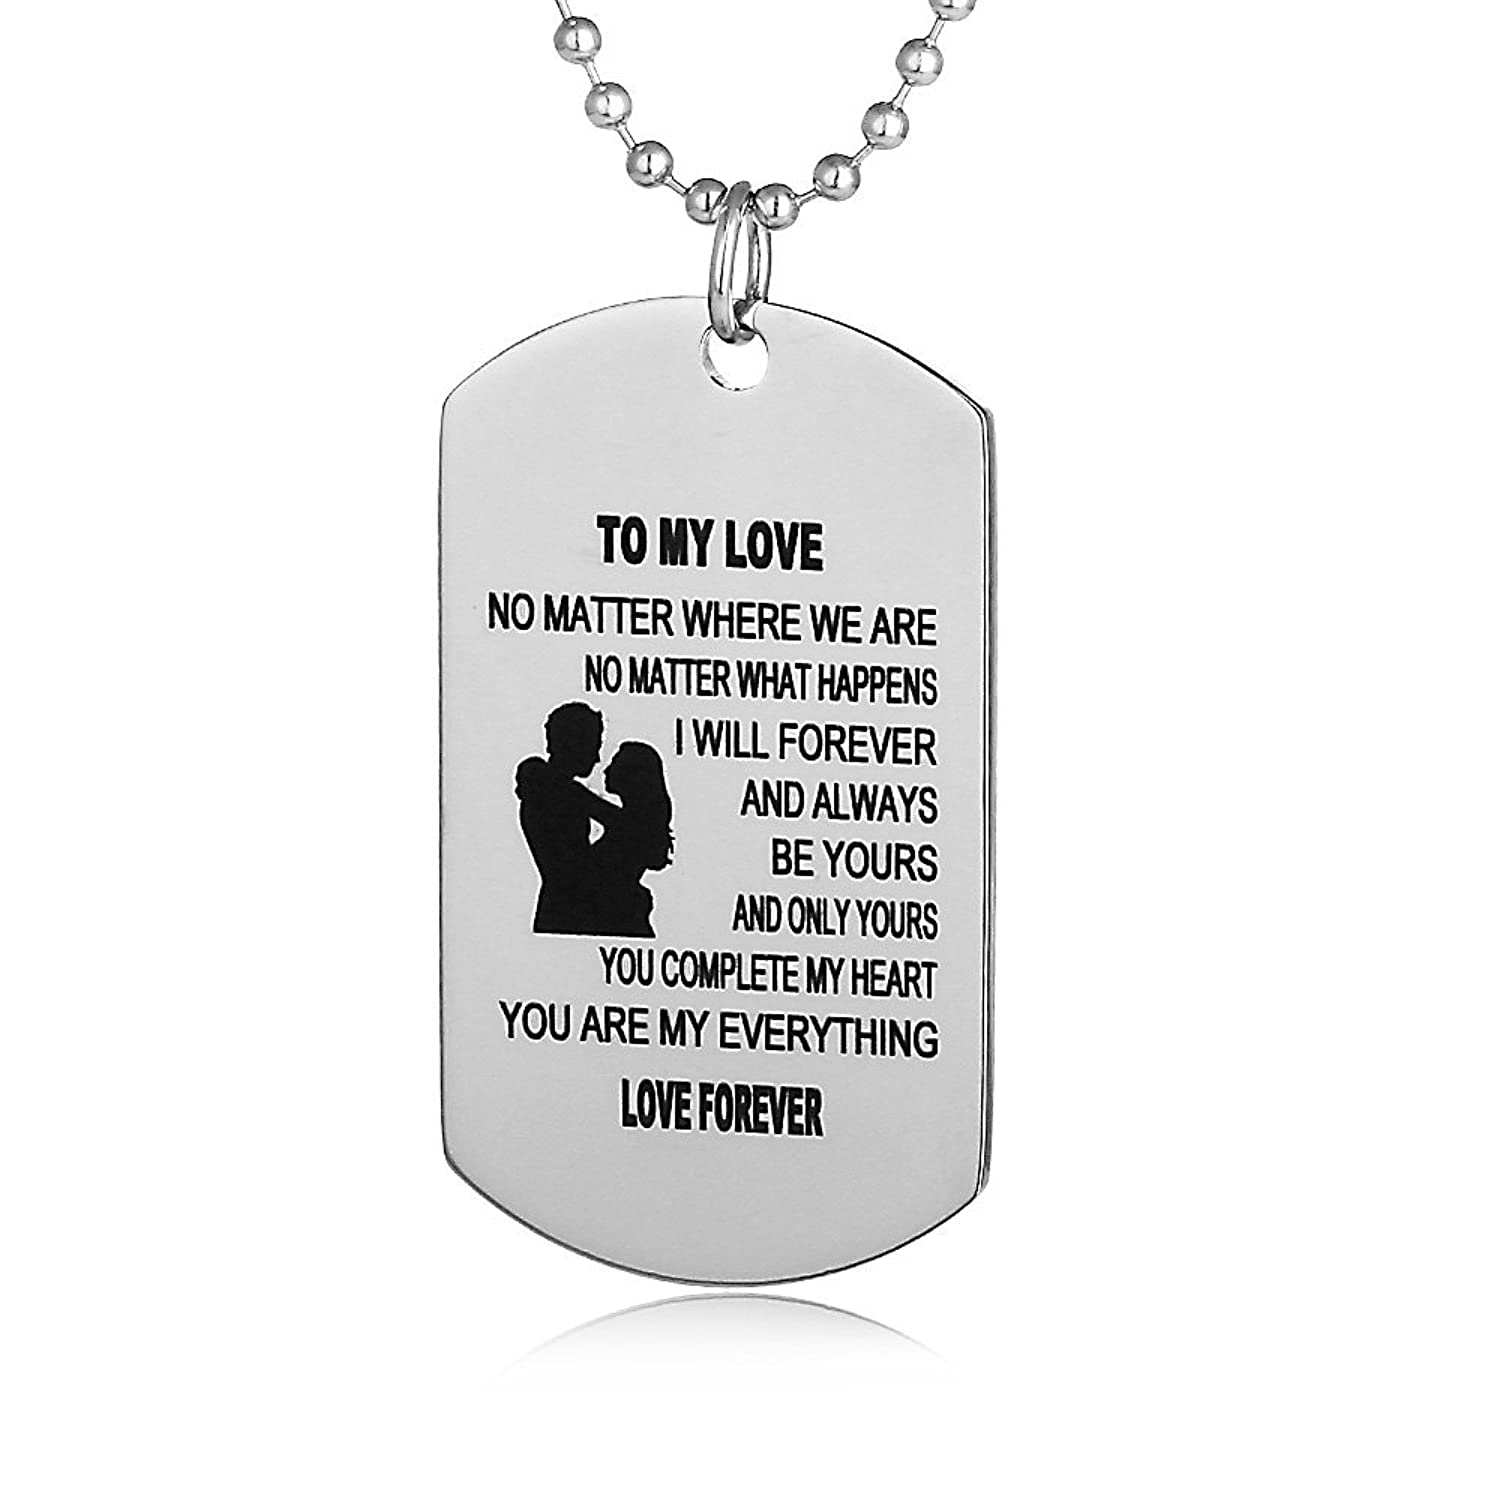 bm large joyofdads and husband wife necklace my com to front